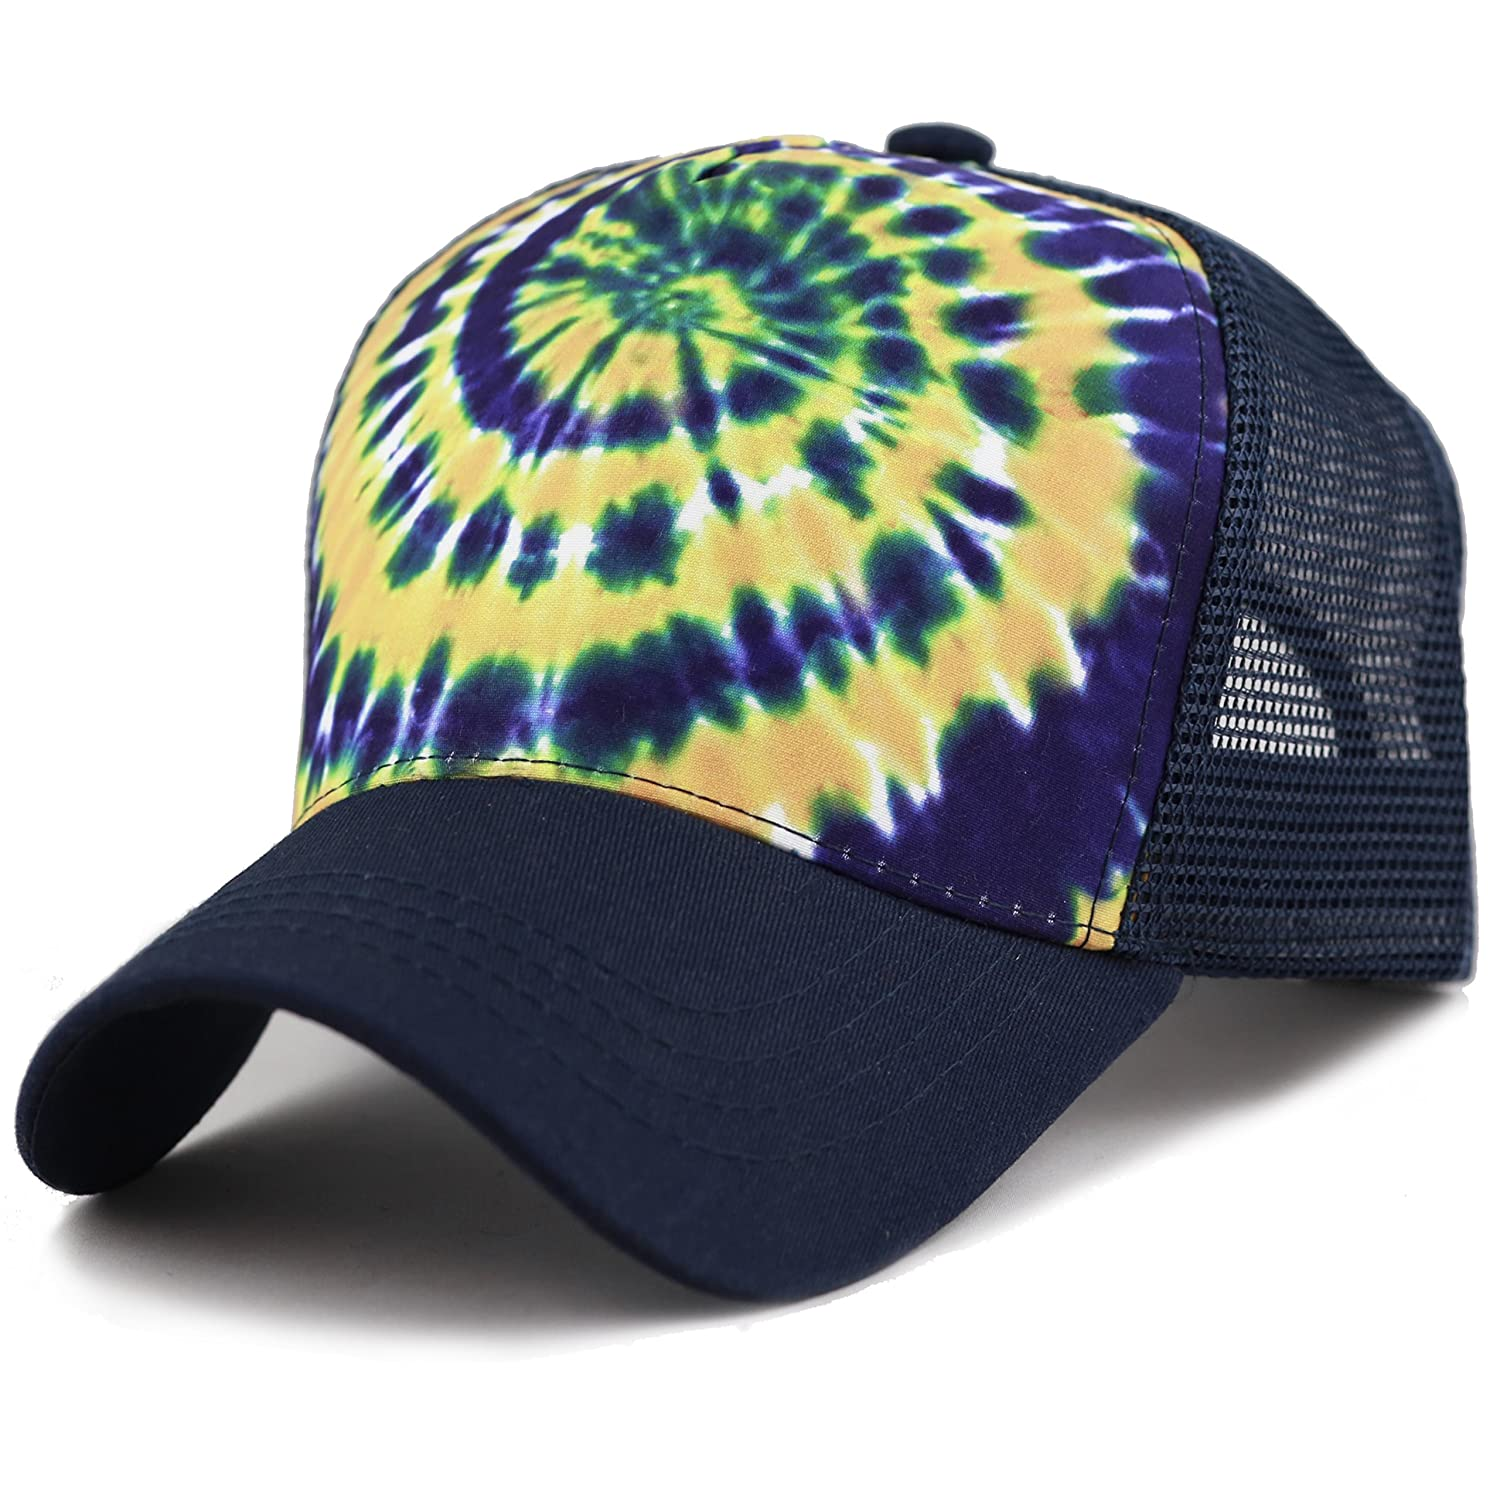 bfe397bd376ed THE HAT DEPOT Tie Dye Print Mesh Back Snapback Trucker Cap Hat (Black  Orange) at Amazon Women s Clothing store